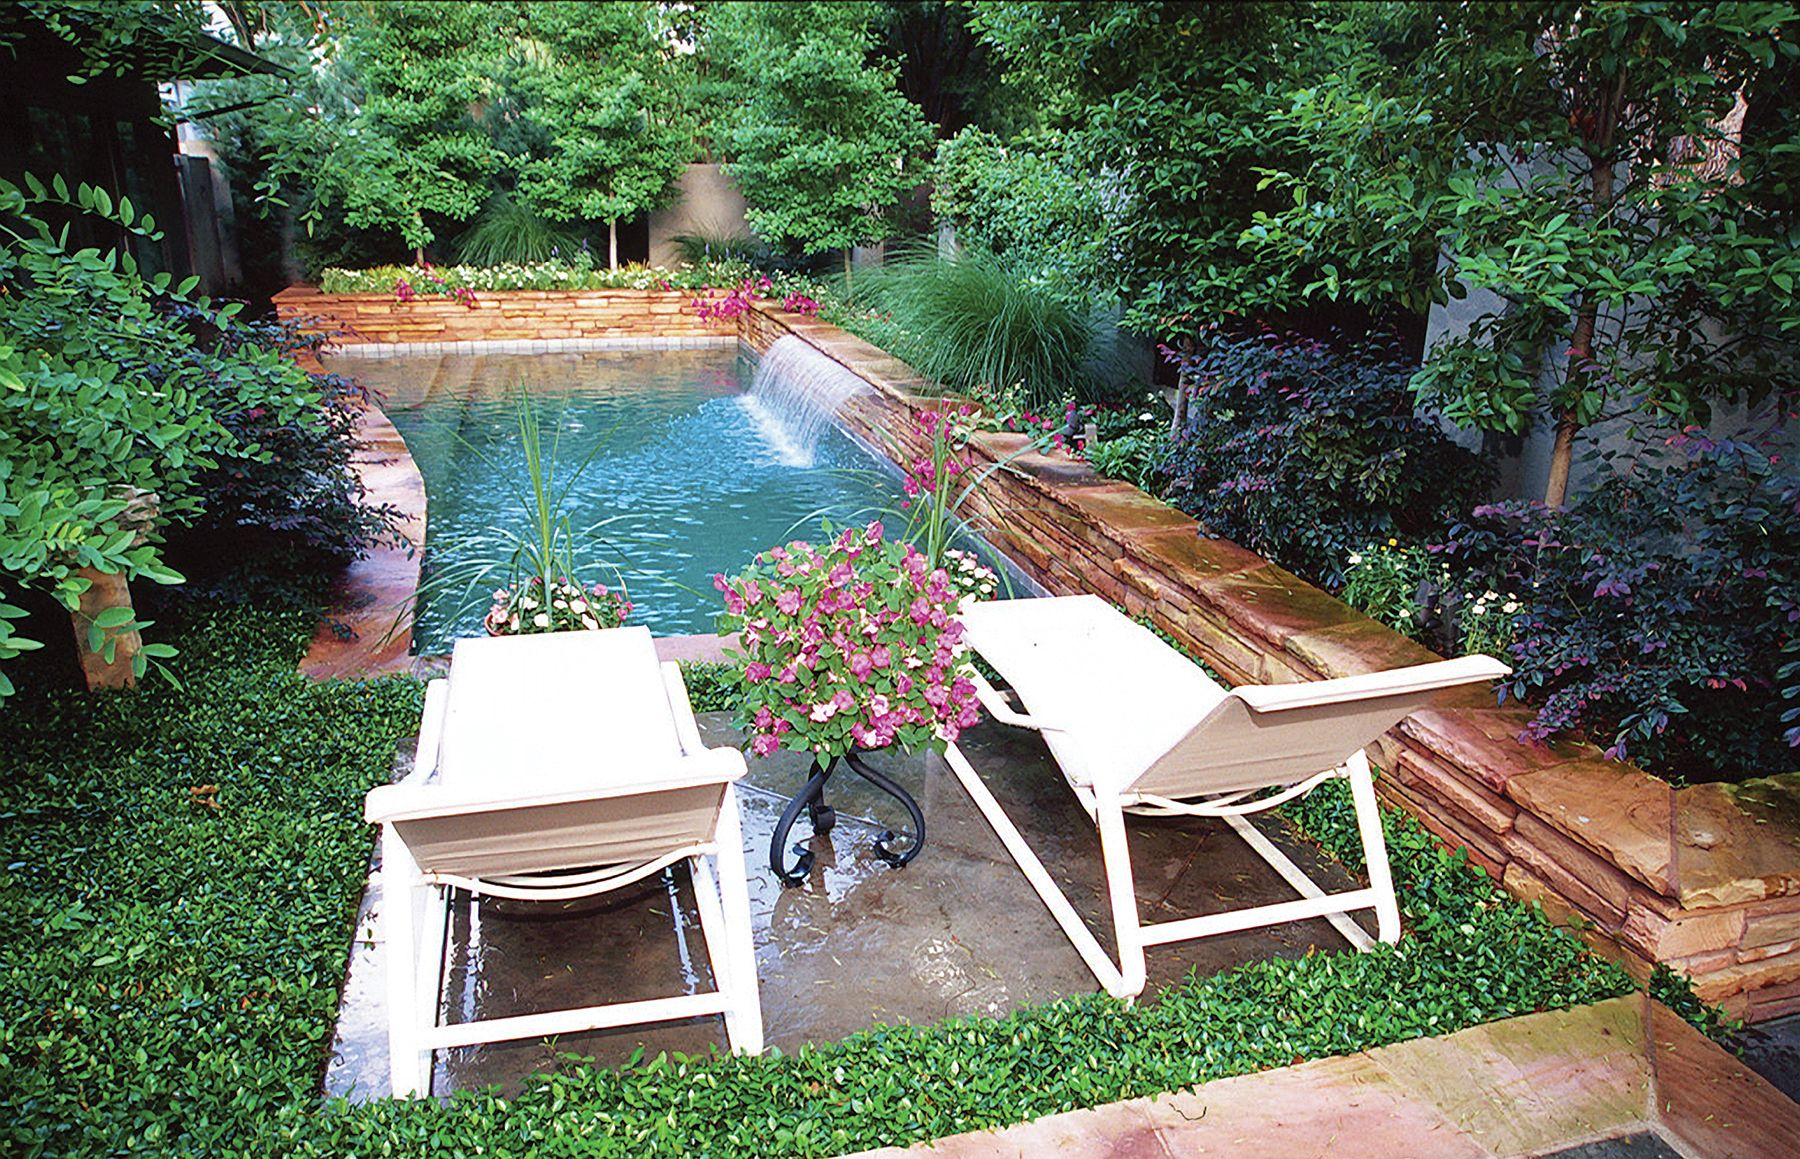 Inground Pool Landscaping Ideas pool landscaping ideas 105 Incredible Pool And Spa Design Pool Backyard Design Ideas